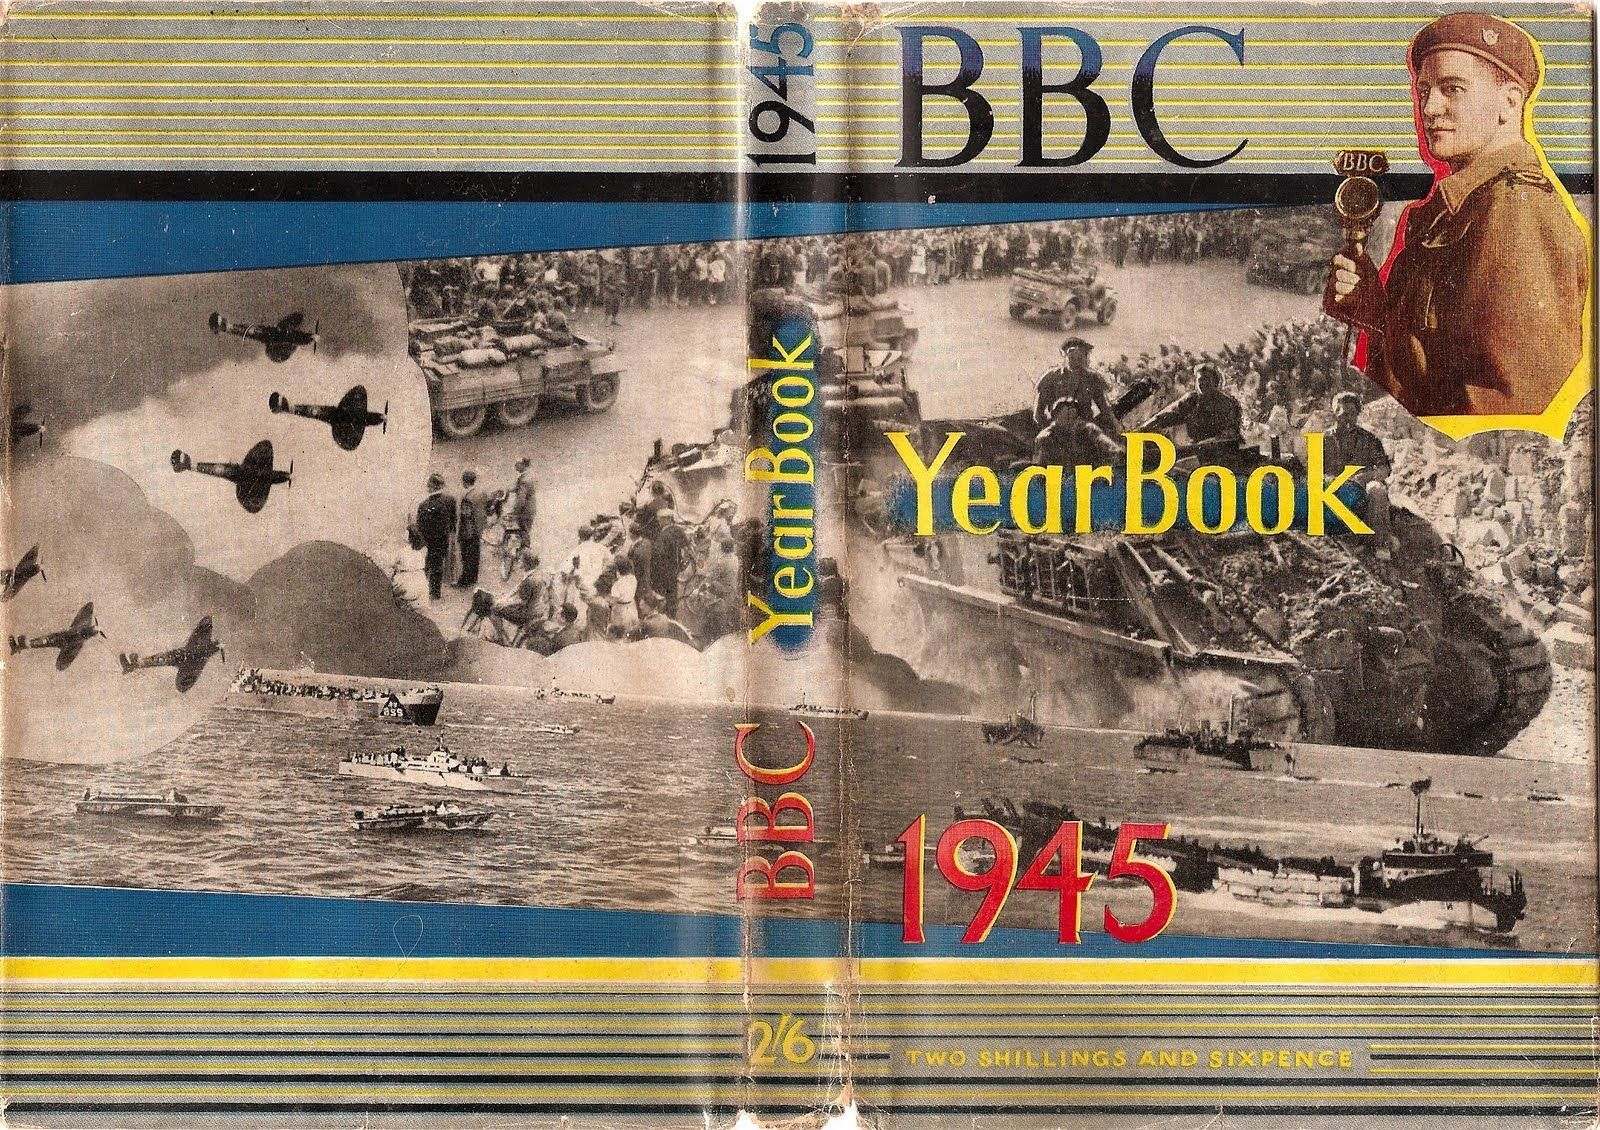 BBC Yearbook 1945 Jacket